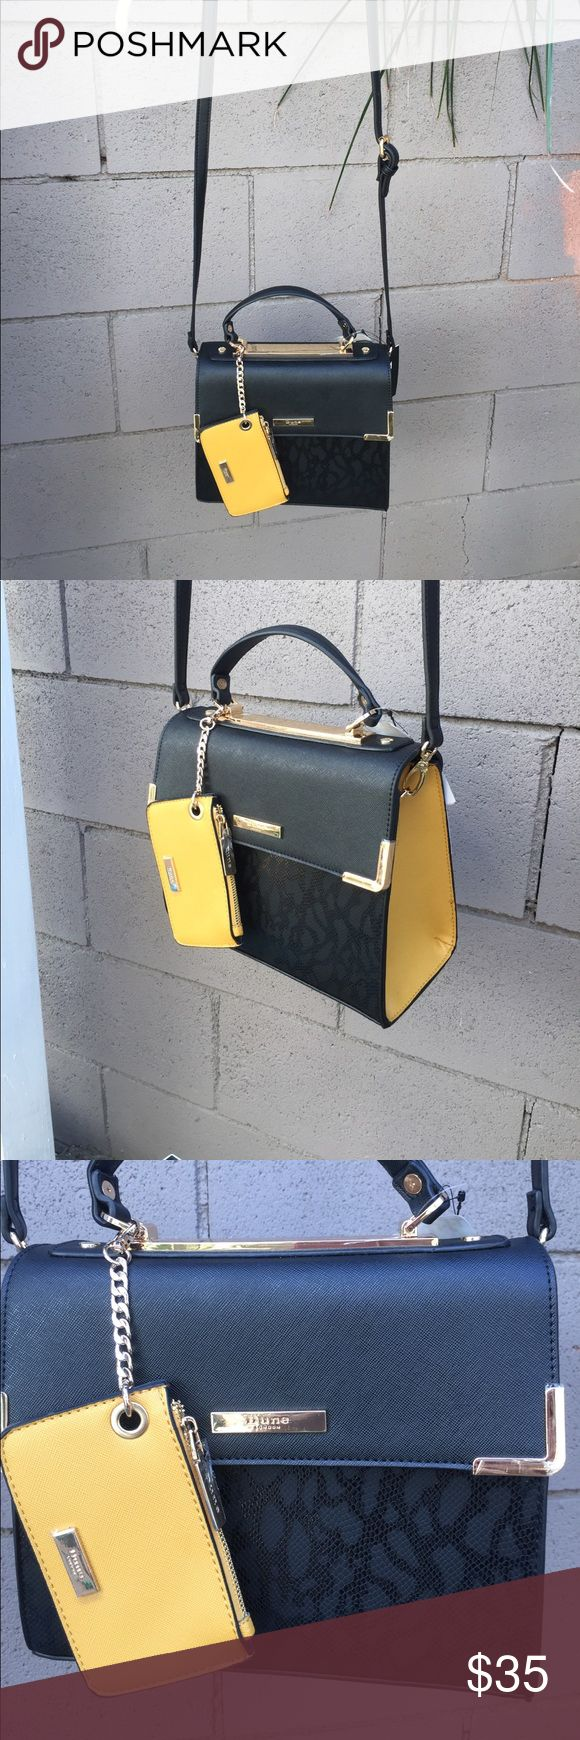 Black/yellow shoulder/or use handle w/coin purse Black/yellow hand bag with shoulder strap.  Has removable yellow coin purse. Dune of London Bags Shoulder Bags